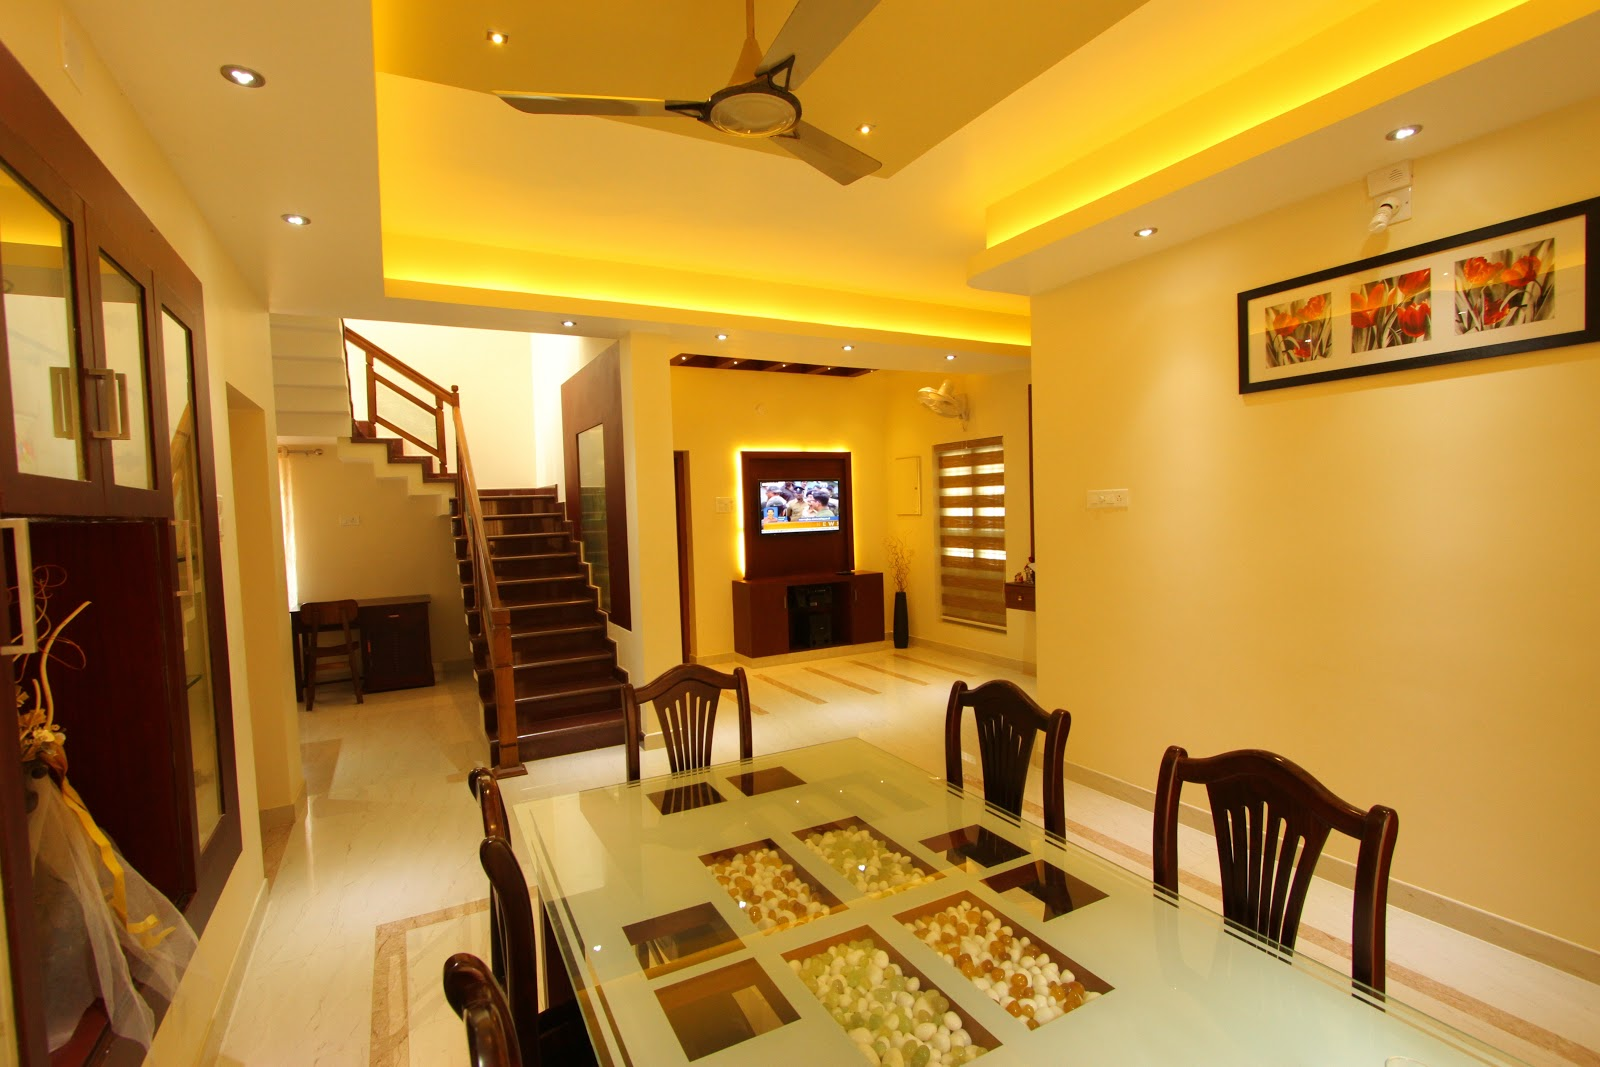 Interior Design Pictures Of Shilpakala Interiors Award Winning Home Interior Design